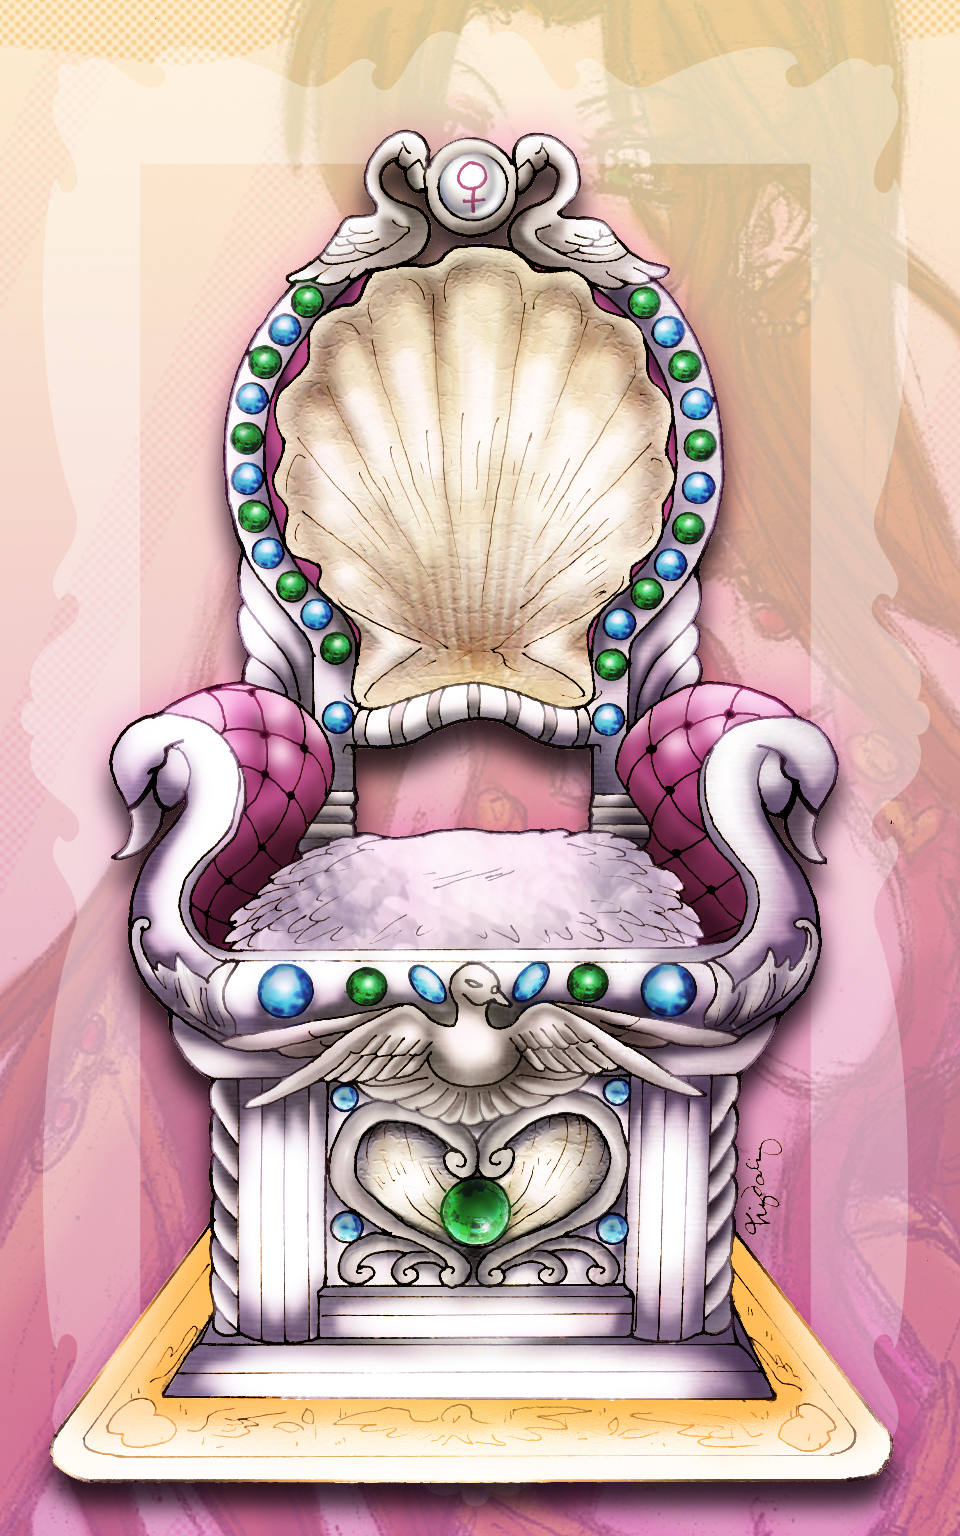 Aphrodite's Throne of Passion by lordaphaius28 on DeviantArt